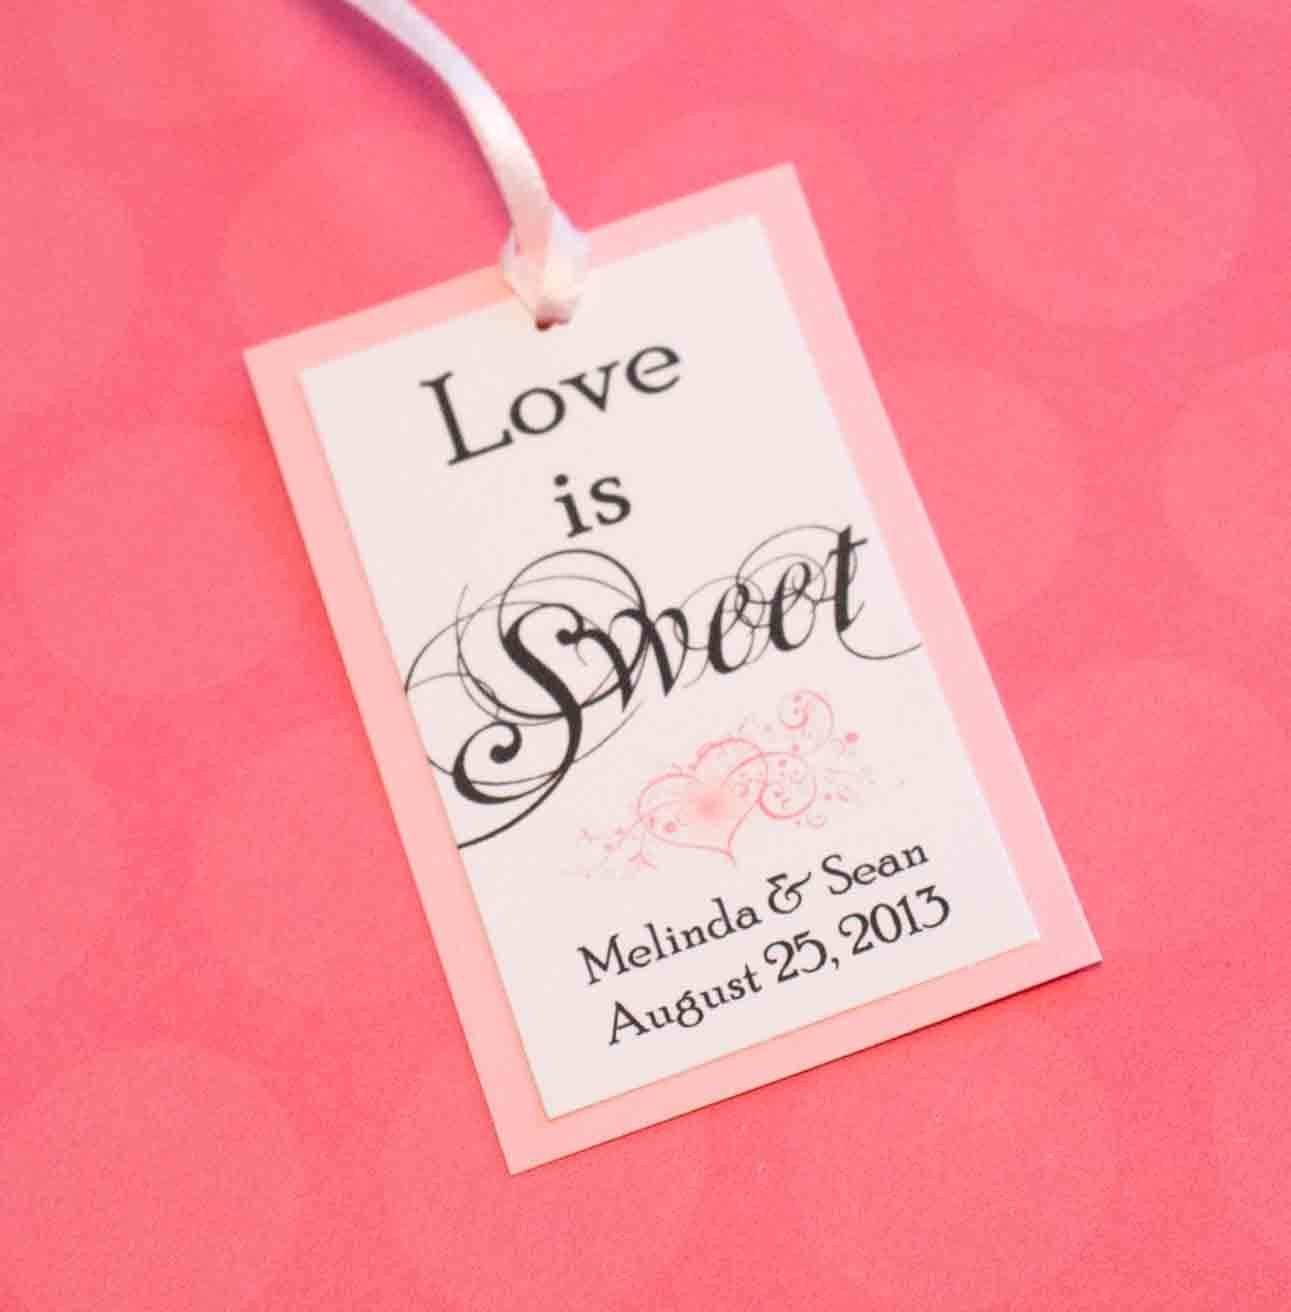 Wedding Favor Ribbon Tags : ... - Love is Sweet - Wedding Favor Tags, Personalized gift tags on Etsy